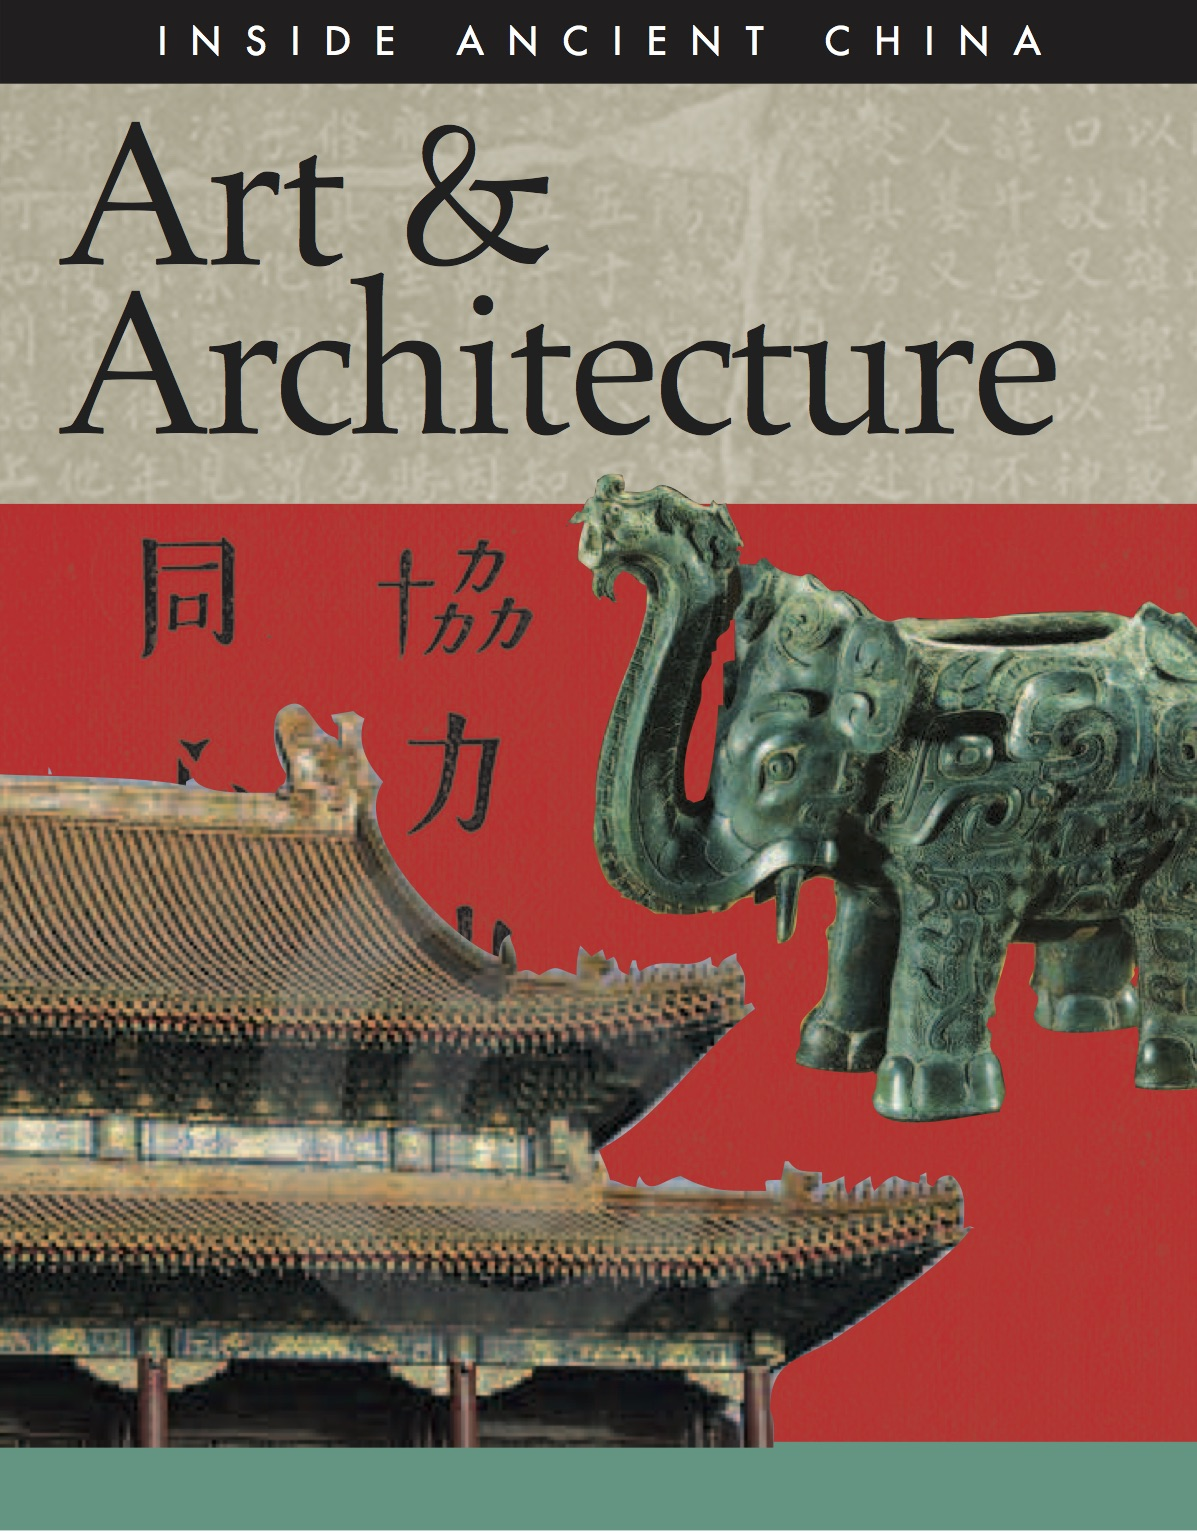 Inside Ancient China: Art & Architecture